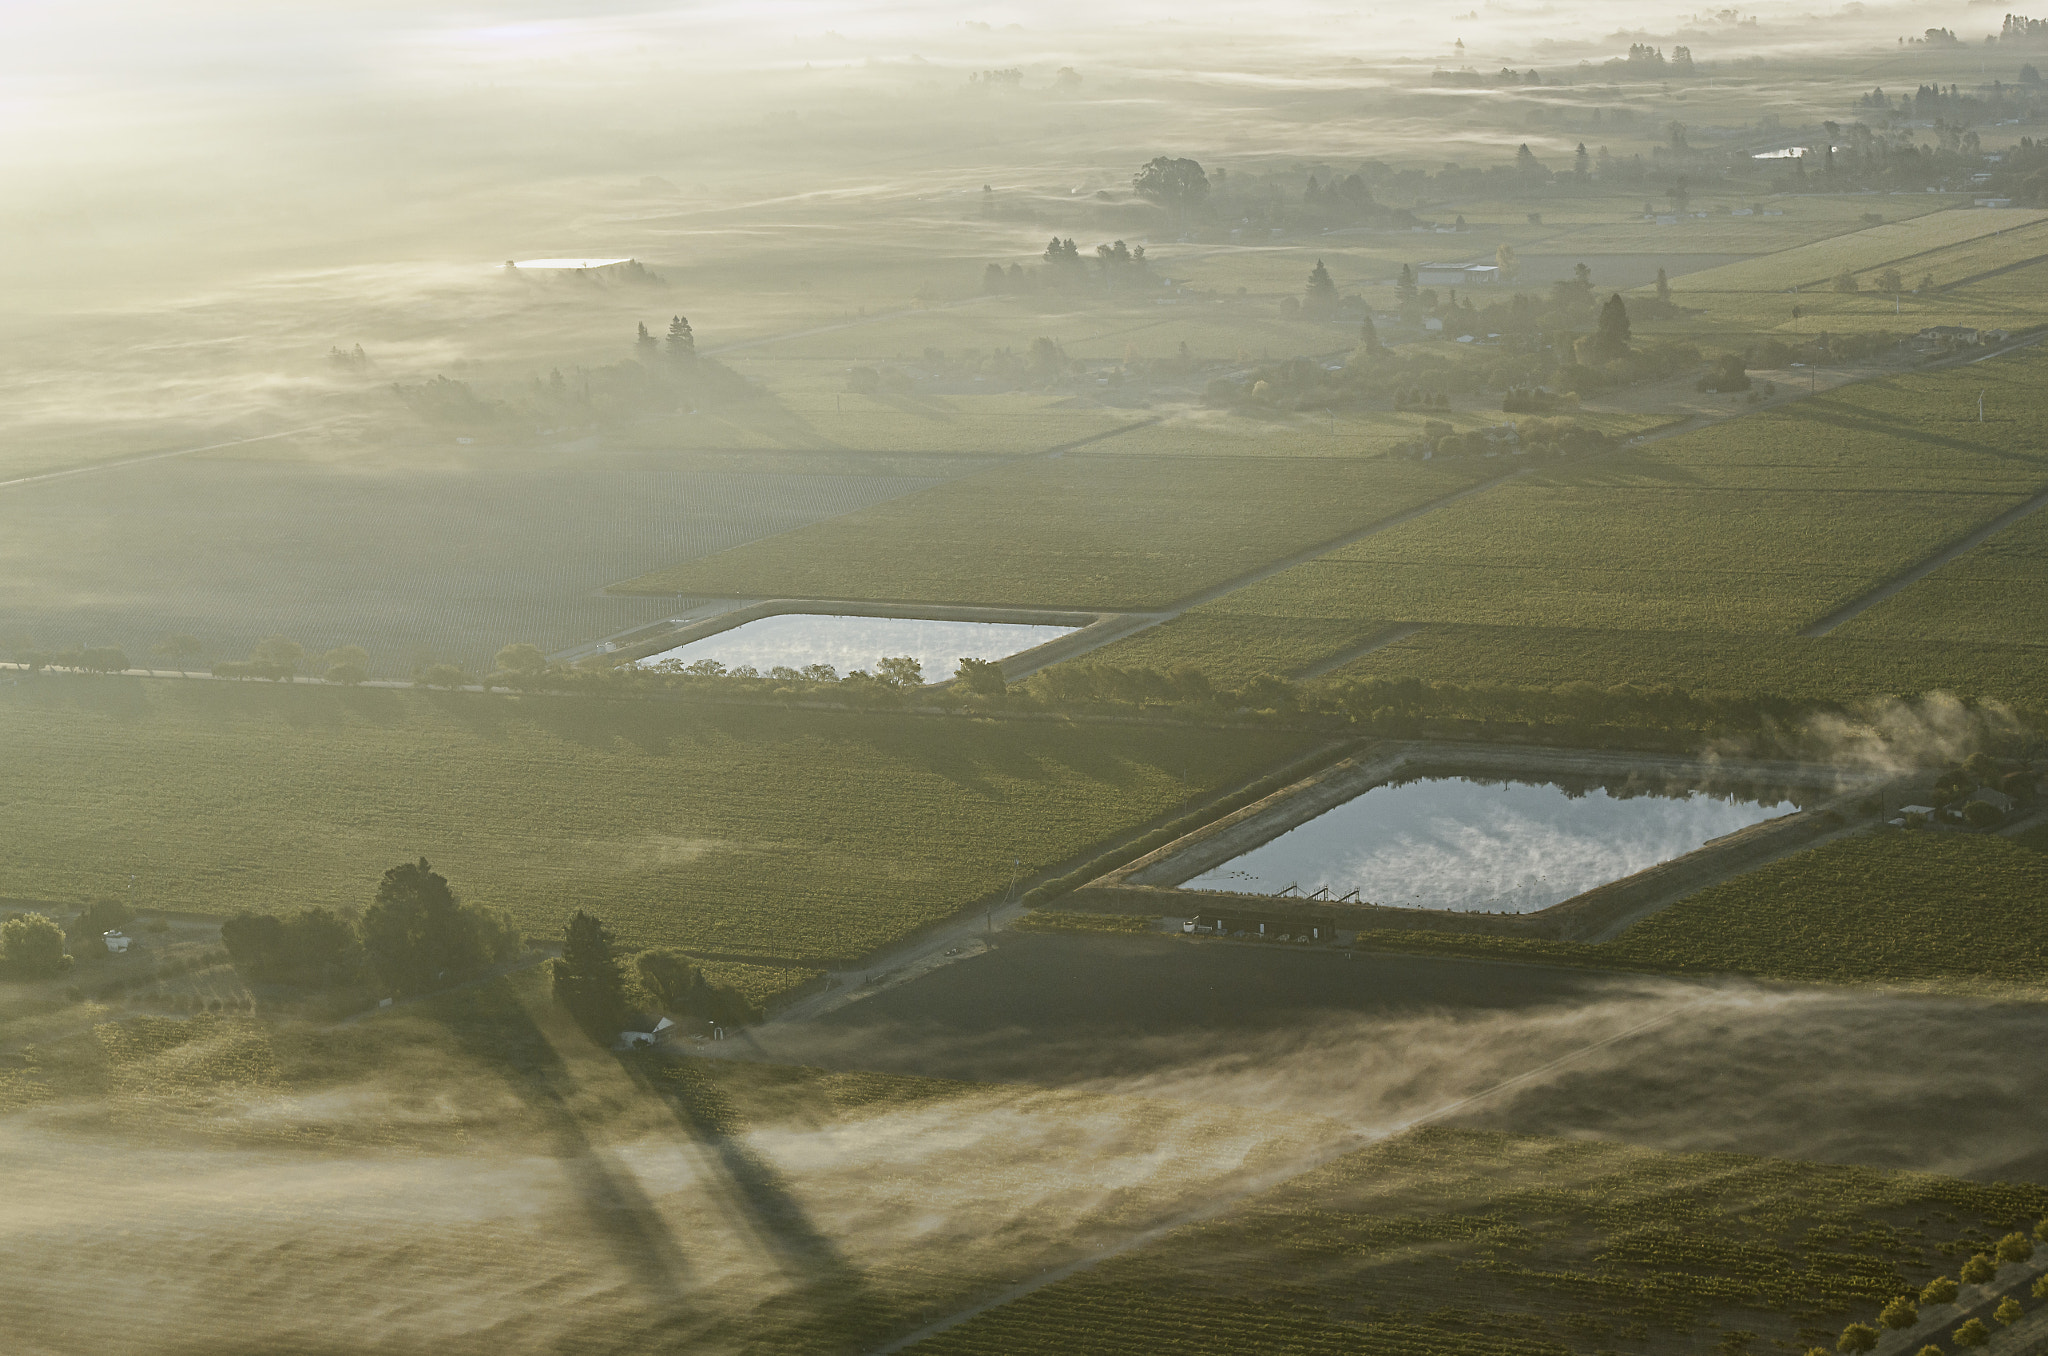 Photograph Vineyard in fog by nick mangiardi on 500px